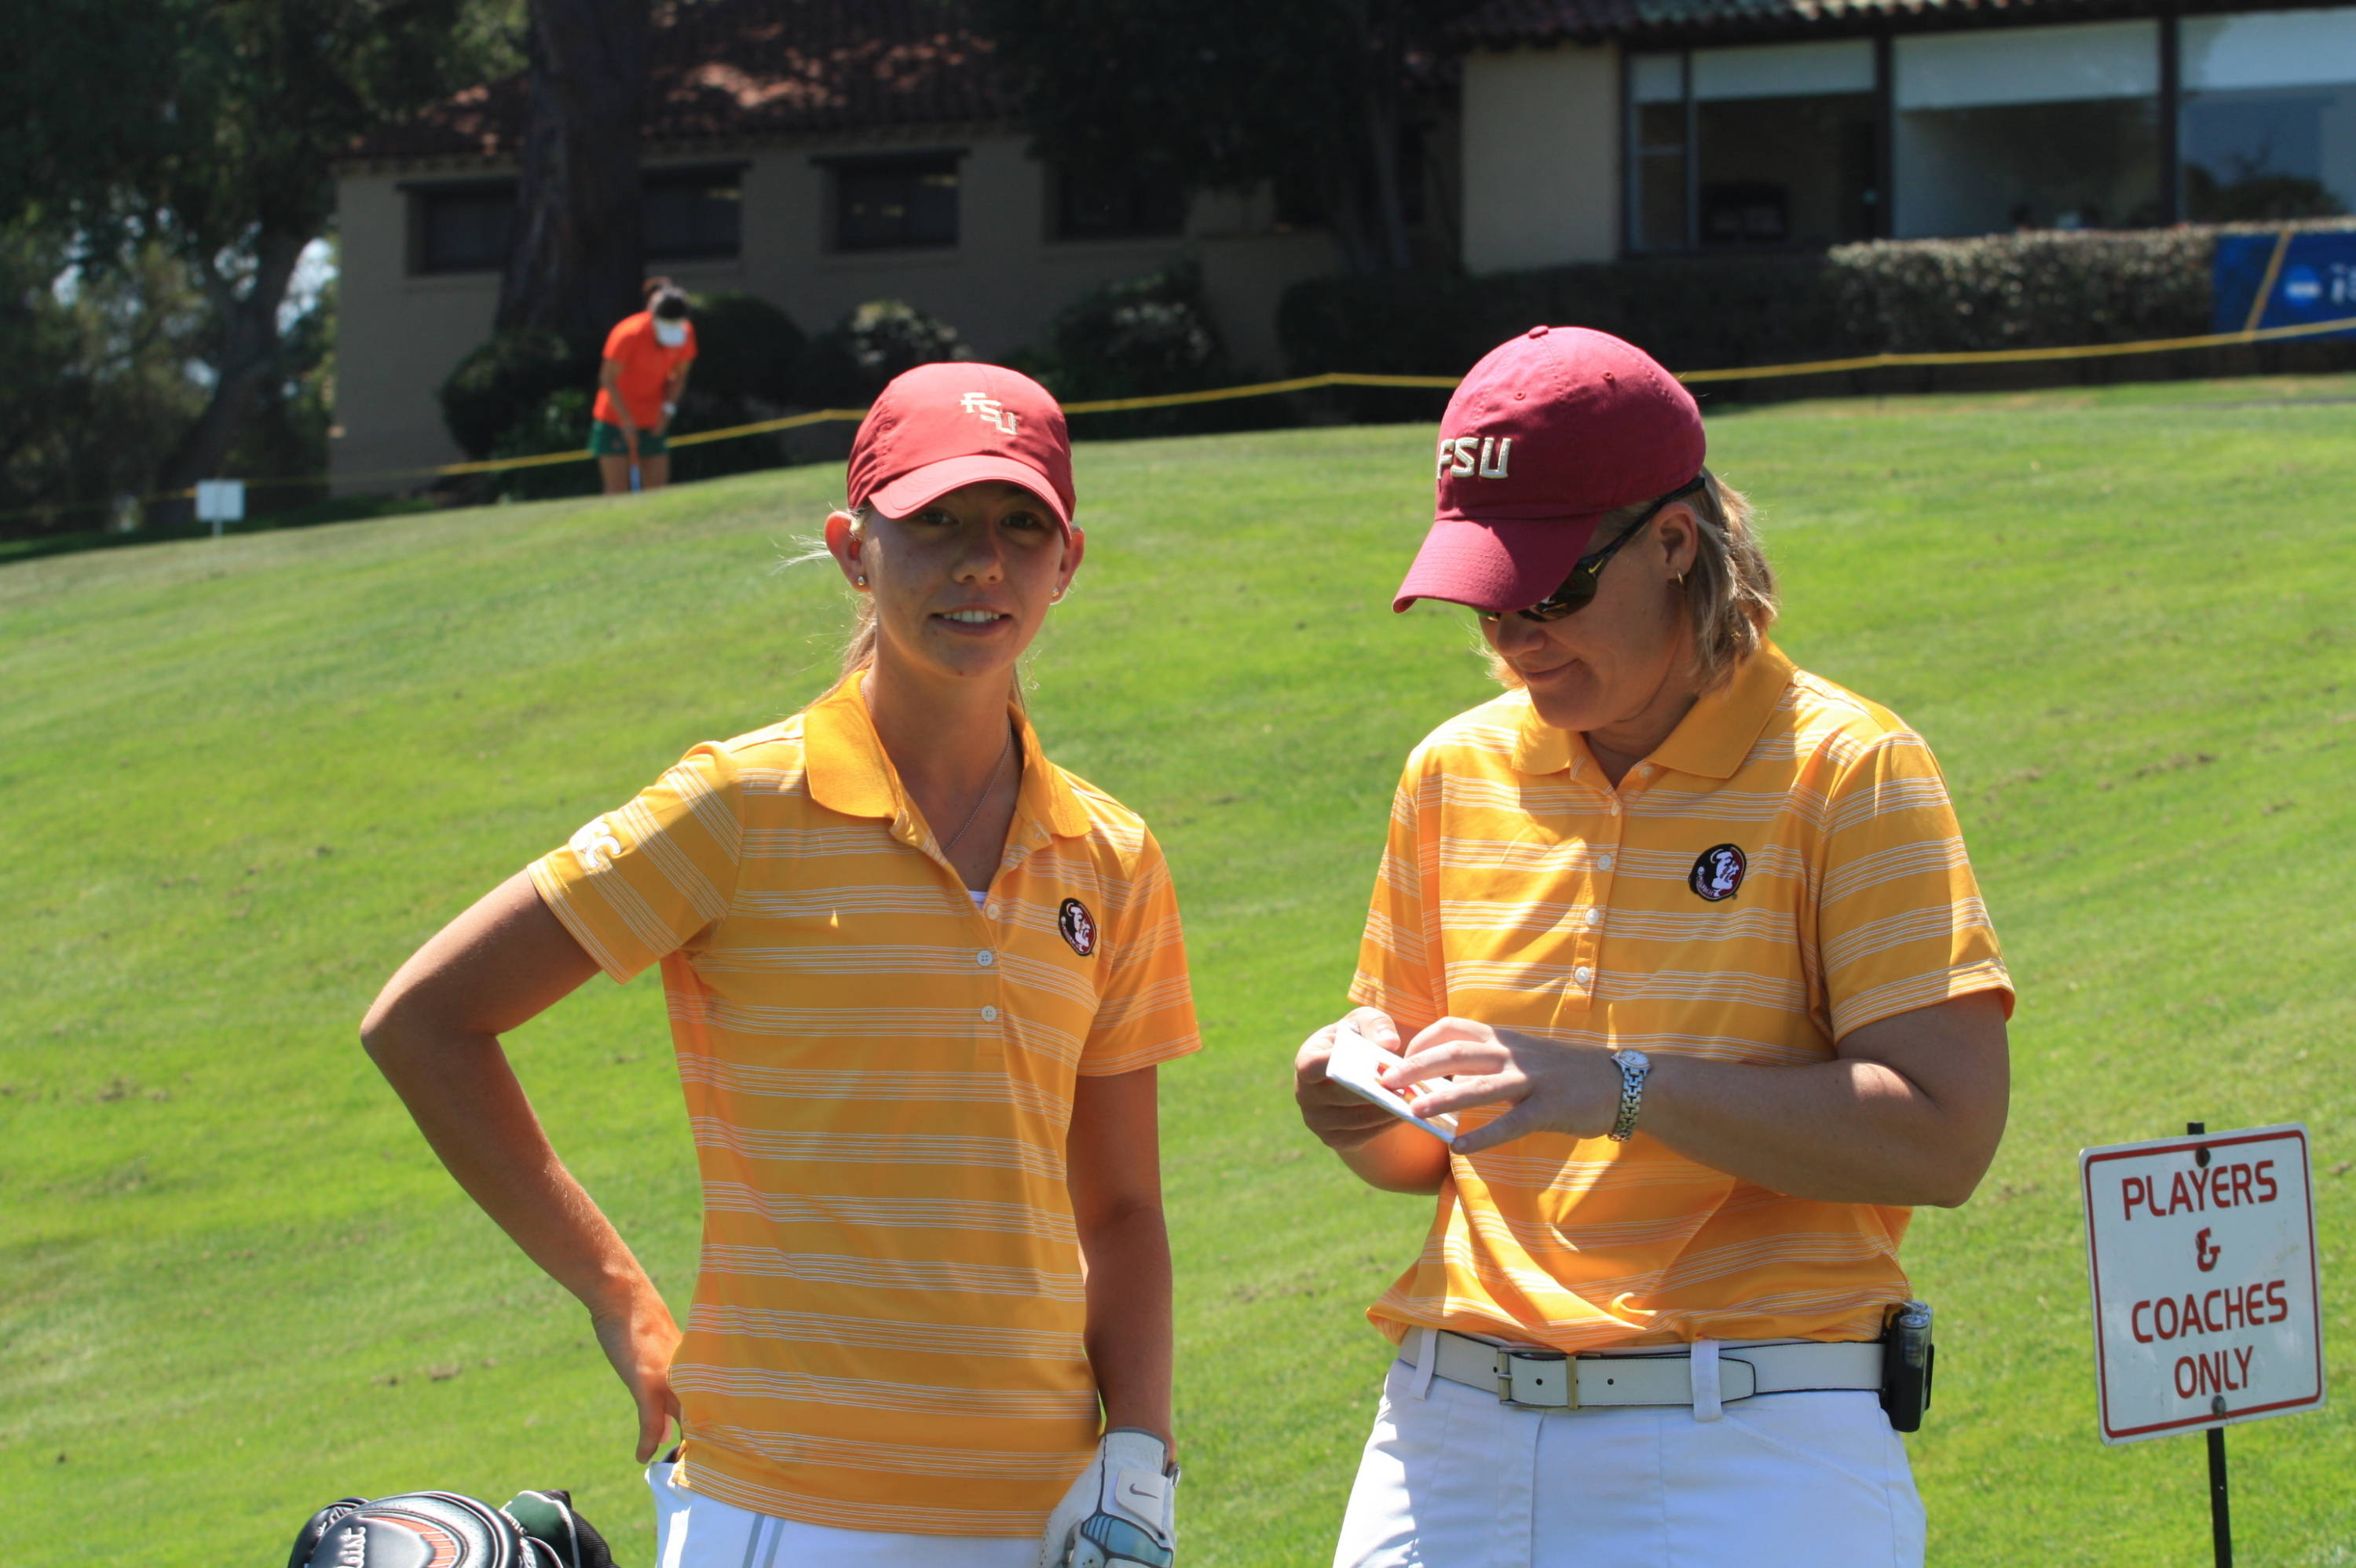 Carlton Kuhlo, Amy Bond -- 2013 NCAA West Regional Championships